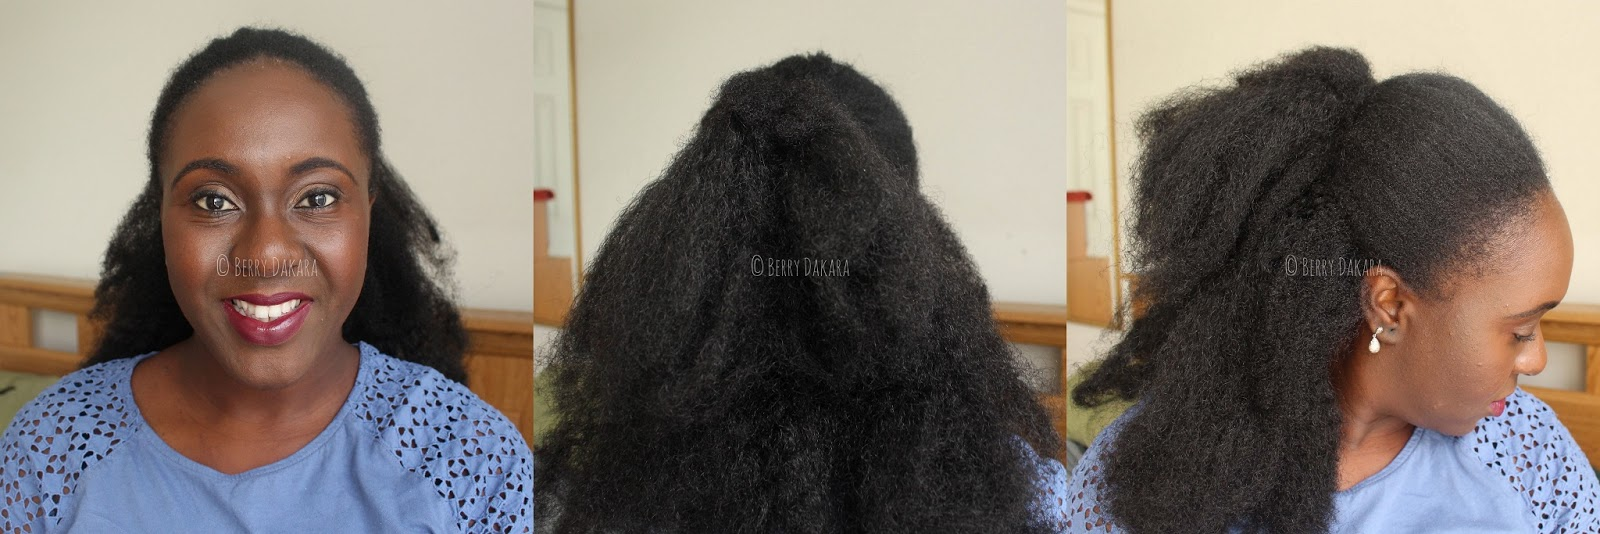 vixen braids, vixen crochet braids, vixen crochet, crochet braids, protective styles, natural hair styles, natural hair